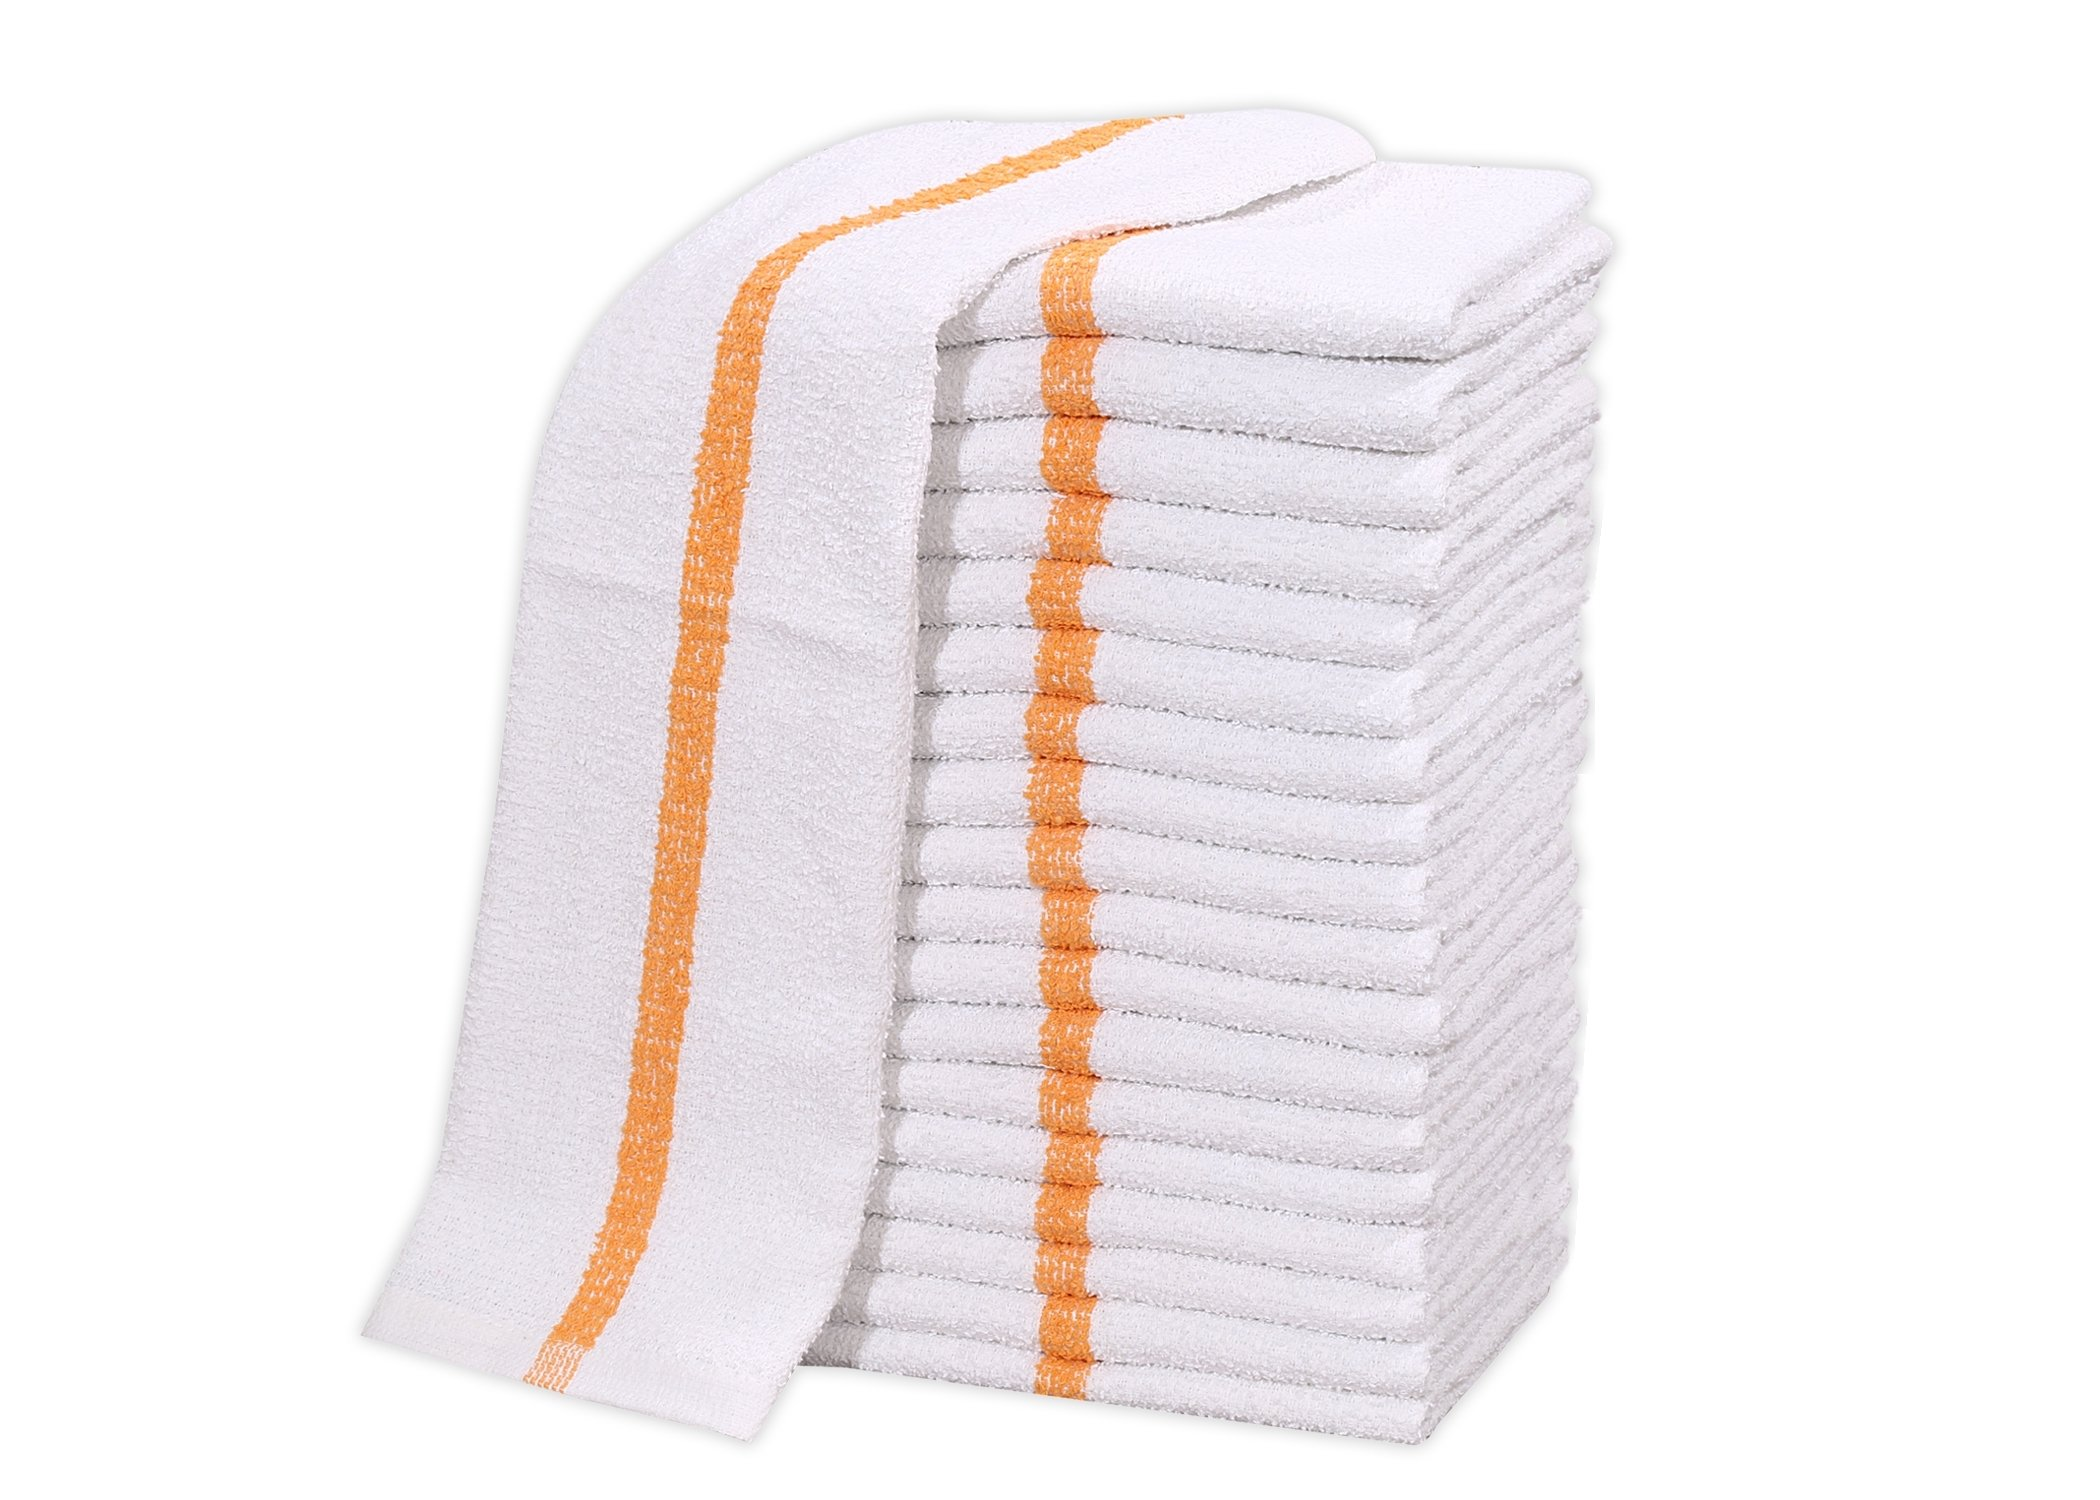 12 PC New 100% Cotton White Restaurant Bar Mops Kitchen Towels 28oz (1 DOZEN ) (12, Gold Stripe)